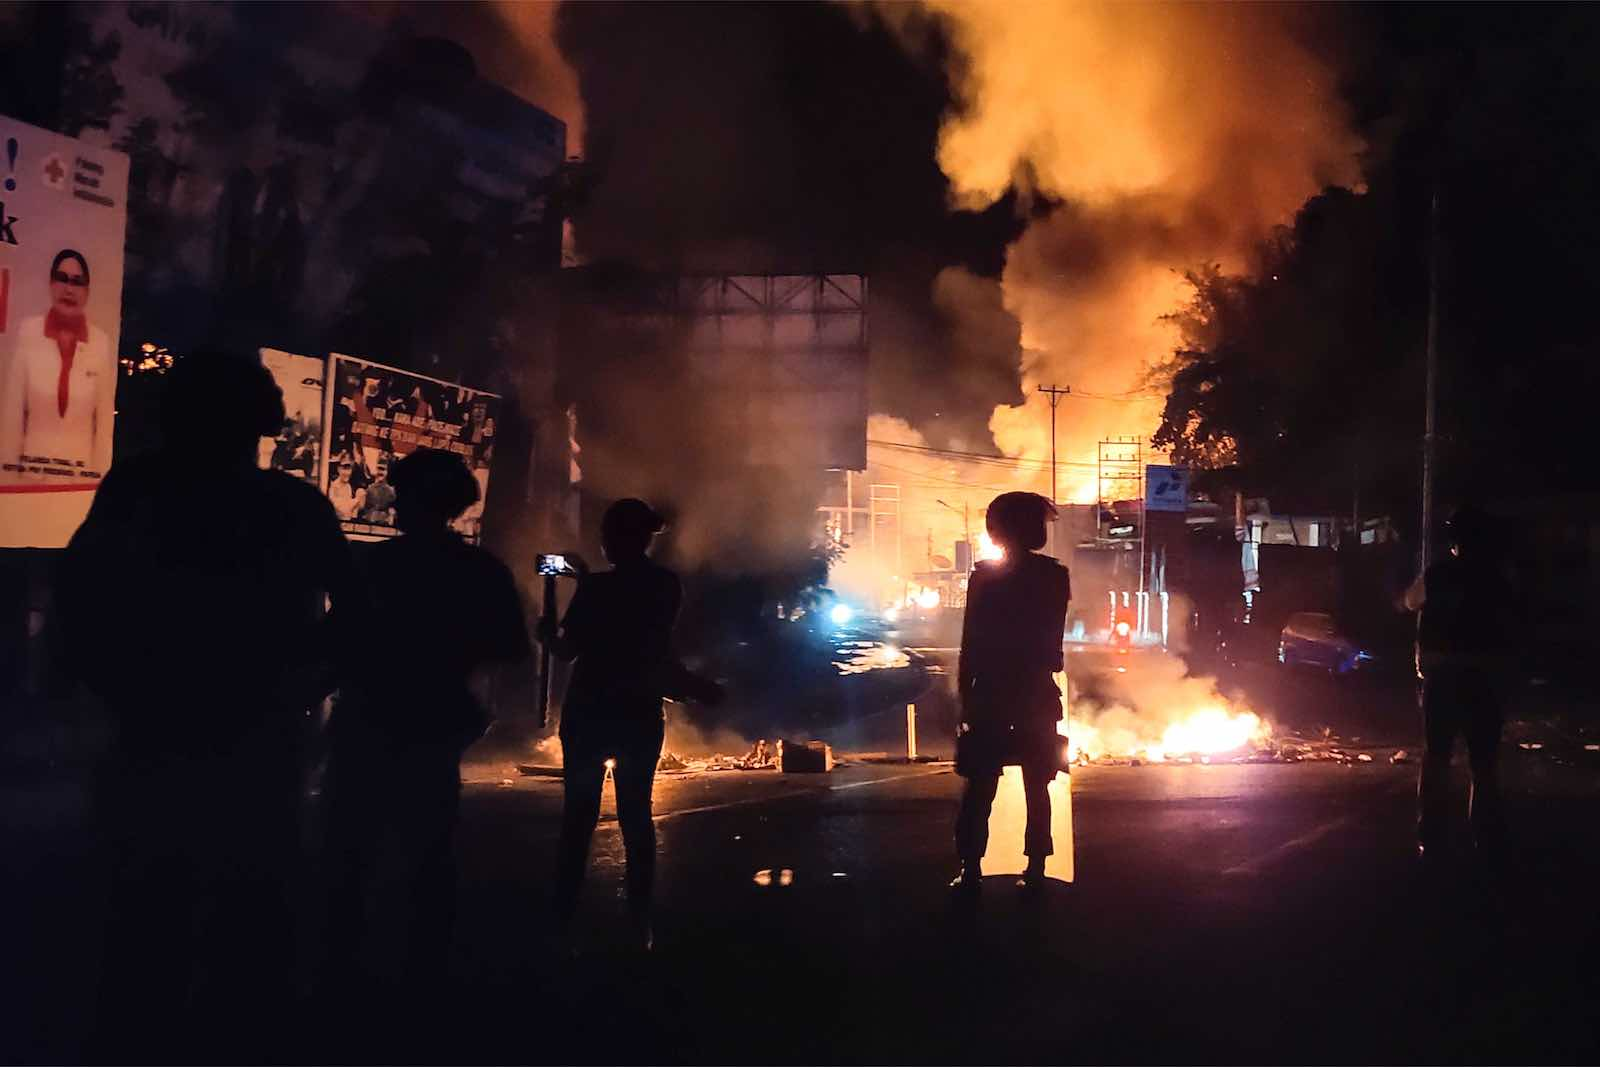 Buildings burn after hundreds of demonstrators marched near Papua's biggest city, Jayapura, on 29 August (Photo: Indra Thamrin Hatta/AFP/Getty Images)